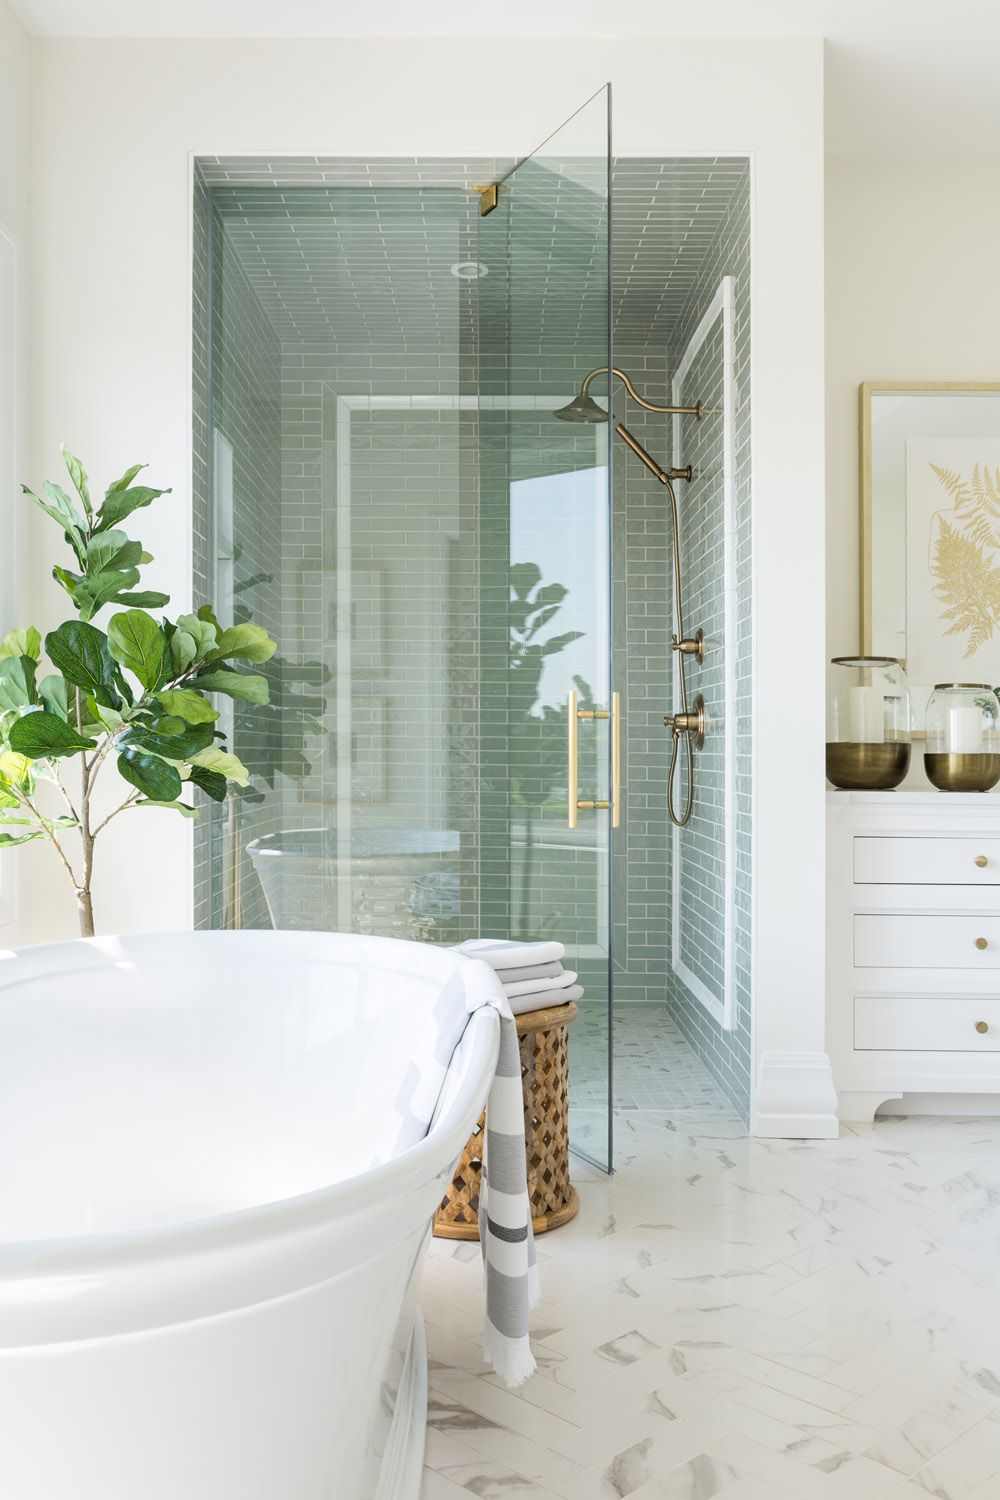 A Dreamy Modern Meets Traditional Show Home In Calgary Modern Traditional Homedecor Inspiration Bathroom Design Modern Meets Traditional Home Remodeling